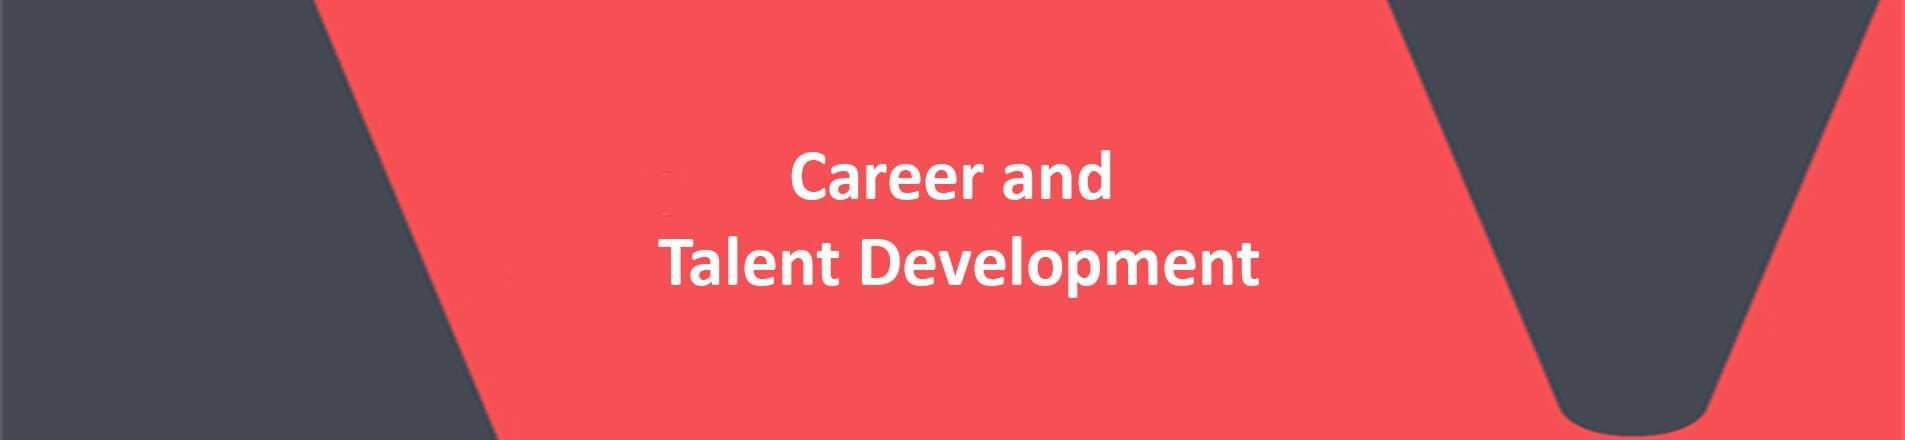 Image of the words career and talent development